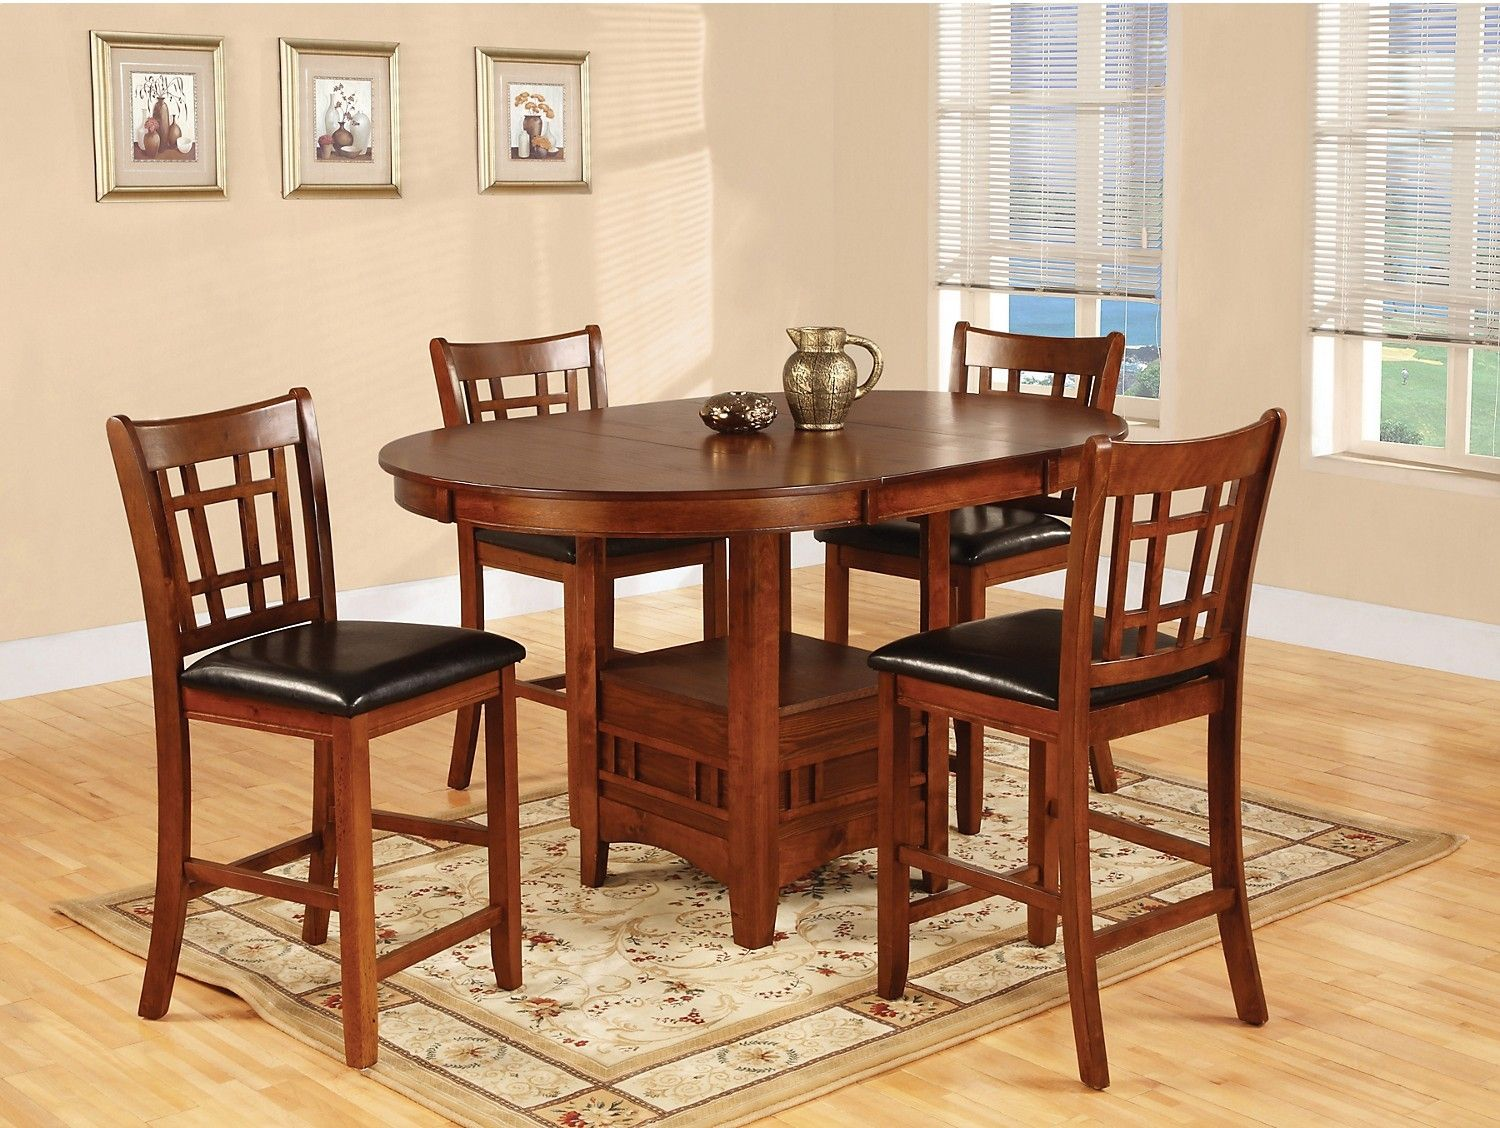 Dalton 5 Piece Oak Counter Height Dining Package The BrickDining Room FurnitureGarden